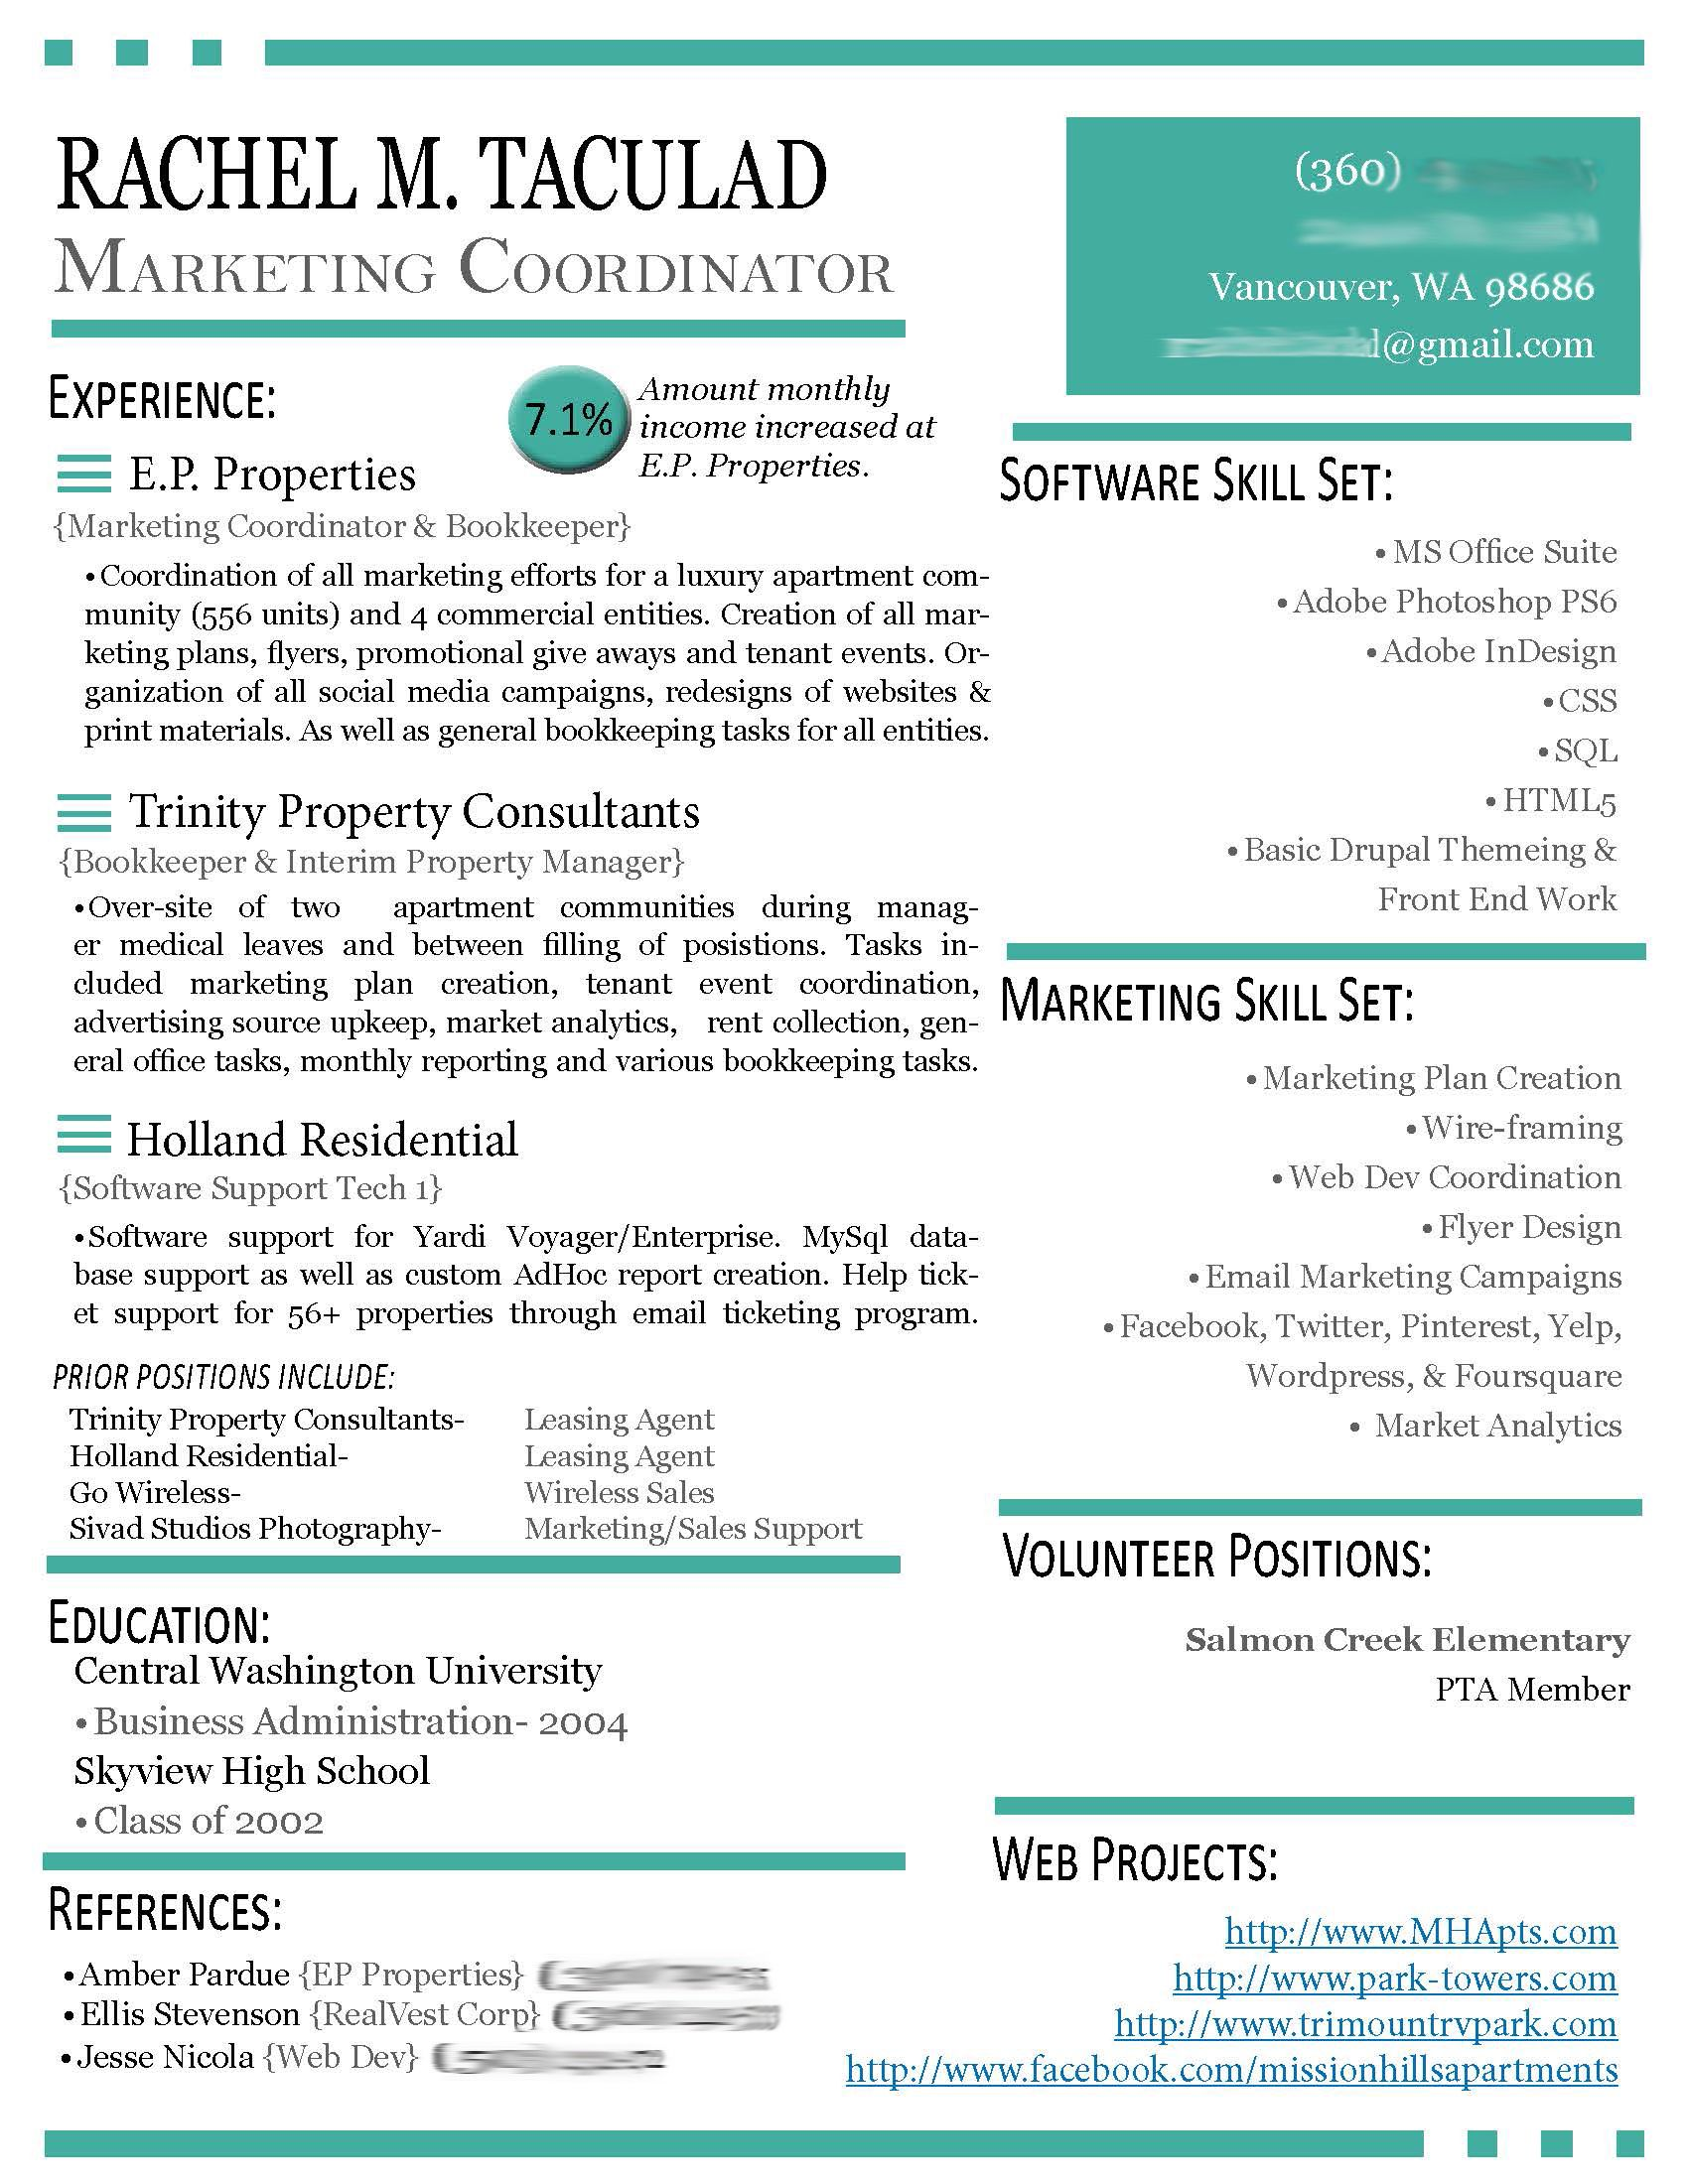 Opposenewapstandardsus  Pleasant  Images About Work Stuff On Pinterest  Resume Professional  With Great  Images About Work Stuff On Pinterest  Resume Professional Resume Template And Resume Templates With Appealing What Is Resume Cv Also I Have Attached My Resume In Addition Federal Resume Sample And Controller Resume As Well As Dental Assistant Resume Examples Additionally Retail Associate Resume From Pinterestcom With Opposenewapstandardsus  Great  Images About Work Stuff On Pinterest  Resume Professional  With Appealing  Images About Work Stuff On Pinterest  Resume Professional Resume Template And Resume Templates And Pleasant What Is Resume Cv Also I Have Attached My Resume In Addition Federal Resume Sample From Pinterestcom